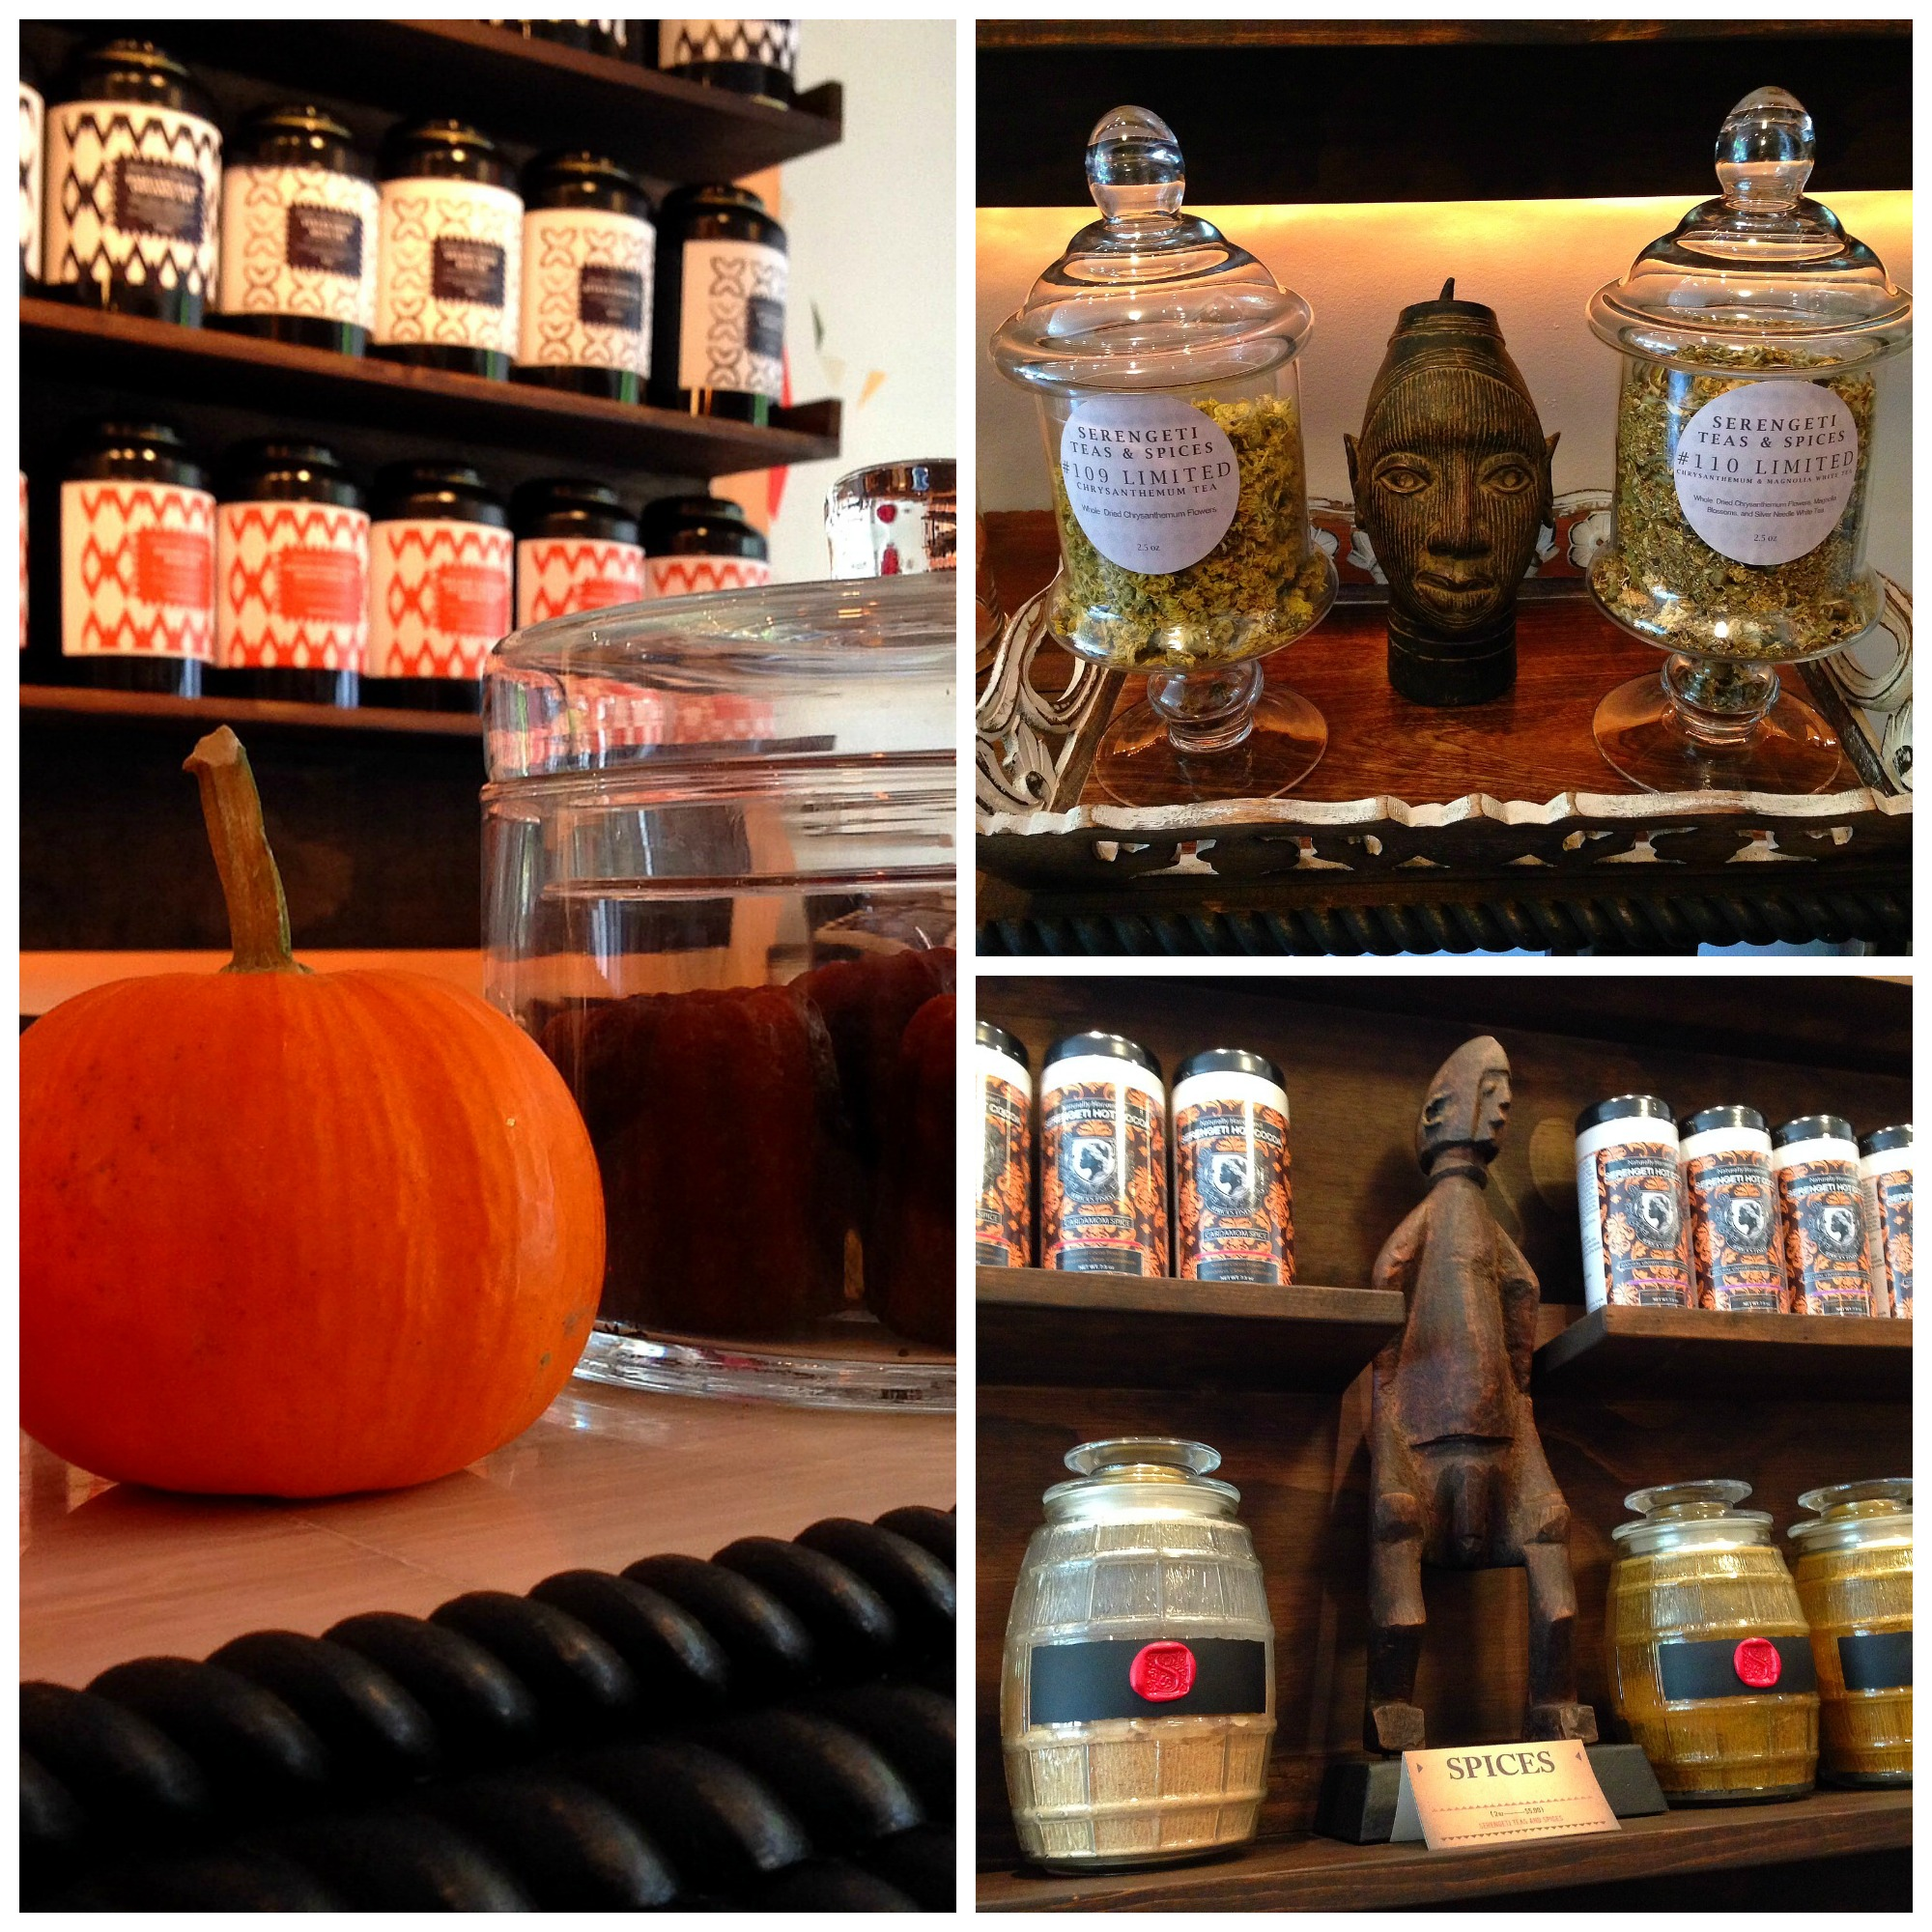 Serengeti Spices & Teas